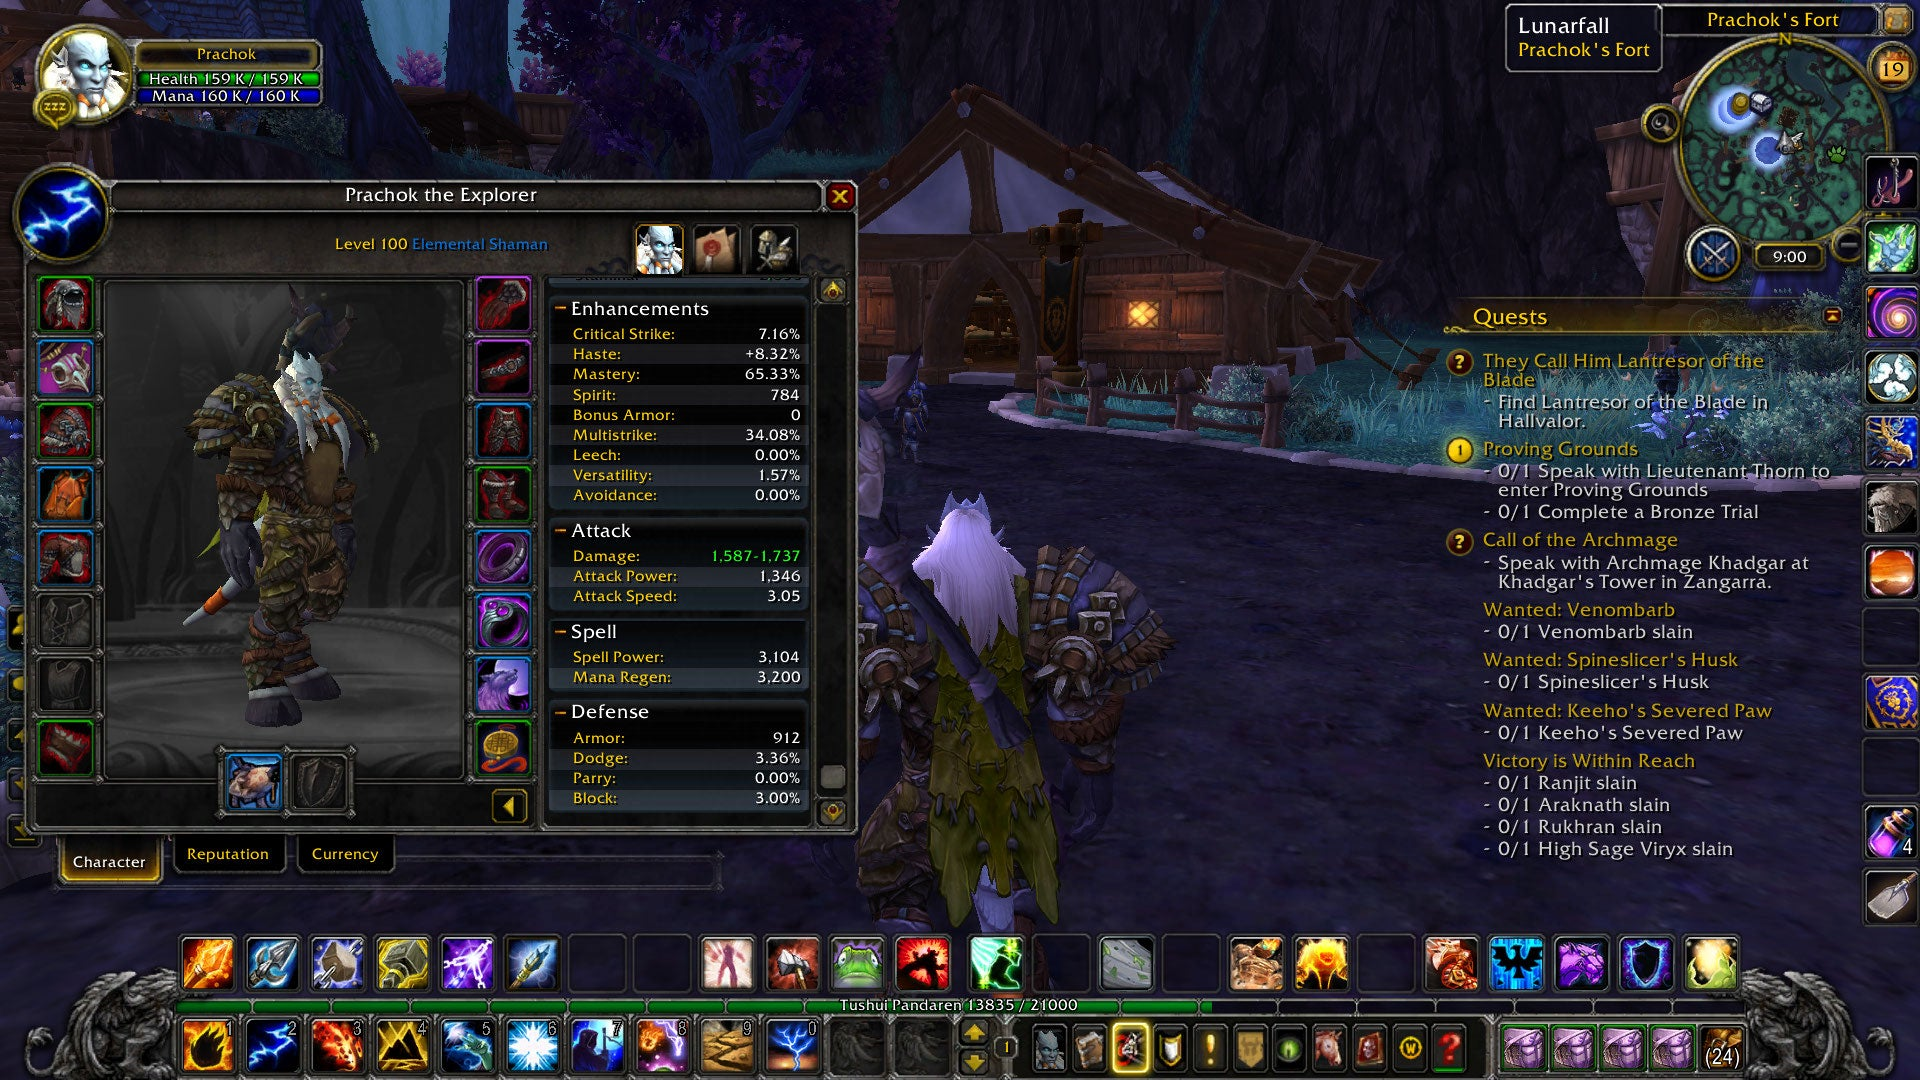 Warlords Of Draenor MMO Log Supplemental: Ding Level 100